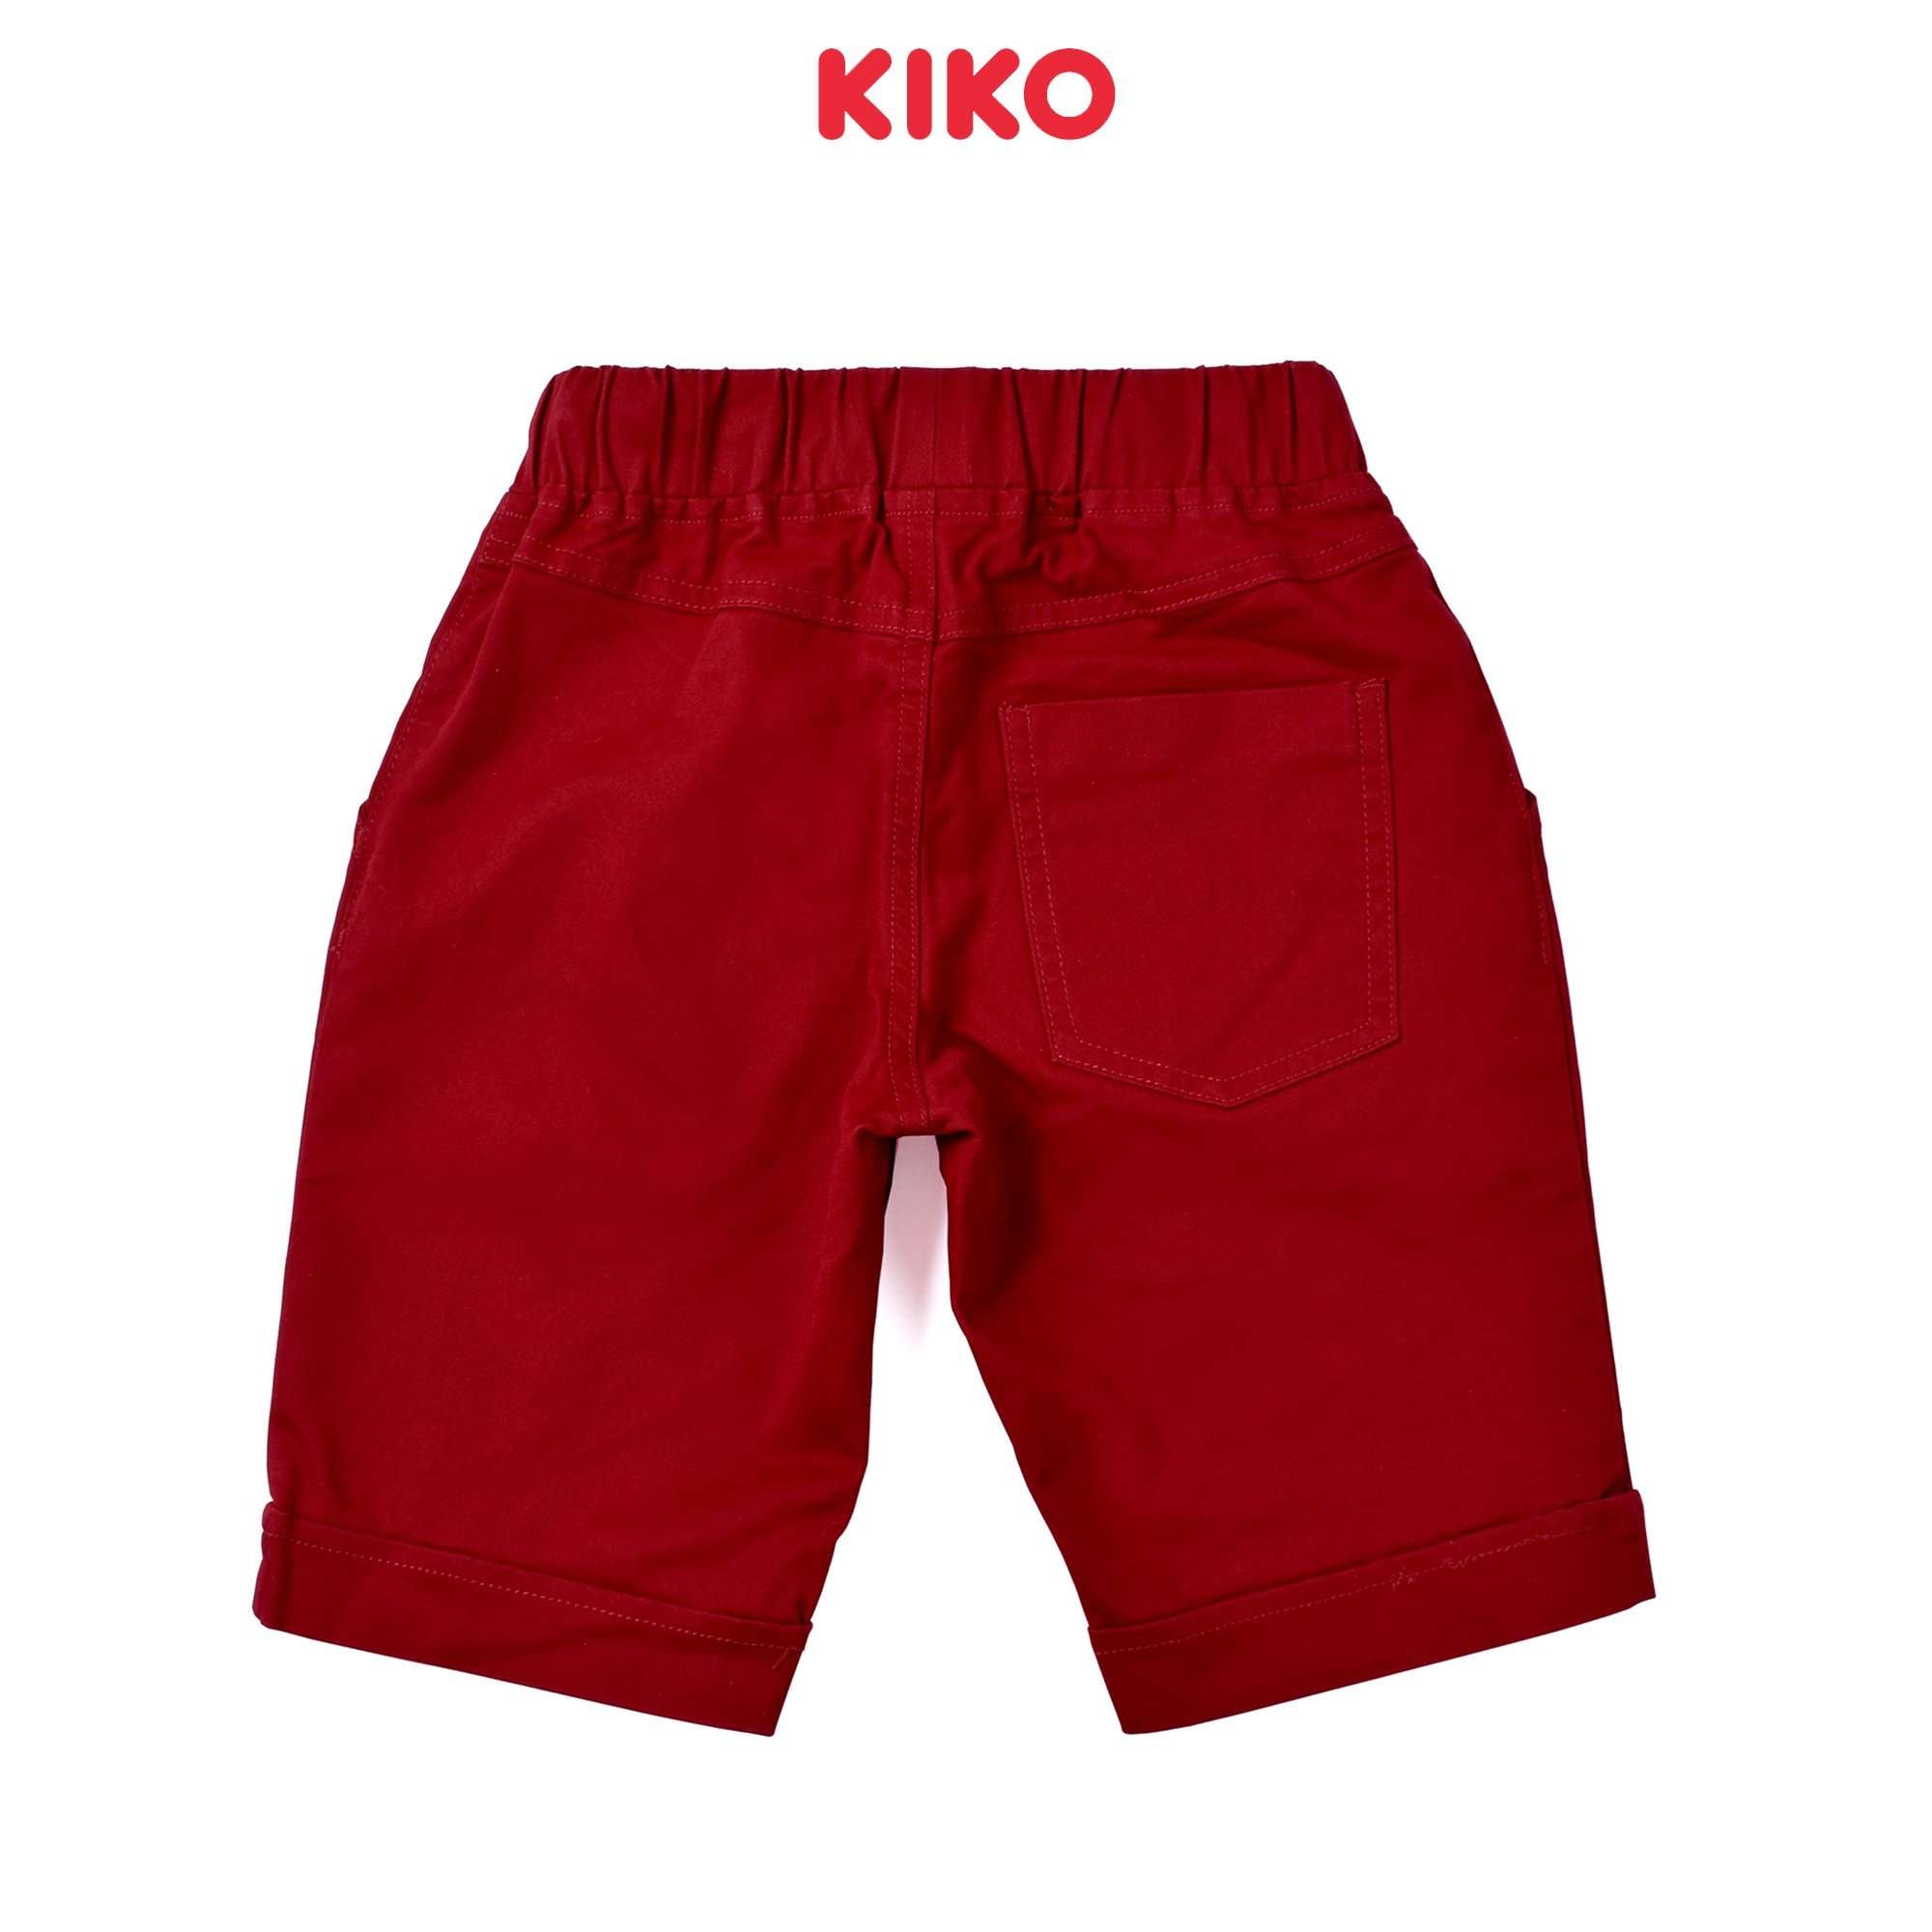 KIKO Boy Cotton Short Pants- Maroon 130115-241 : Buy KIKO online at CMG.MY